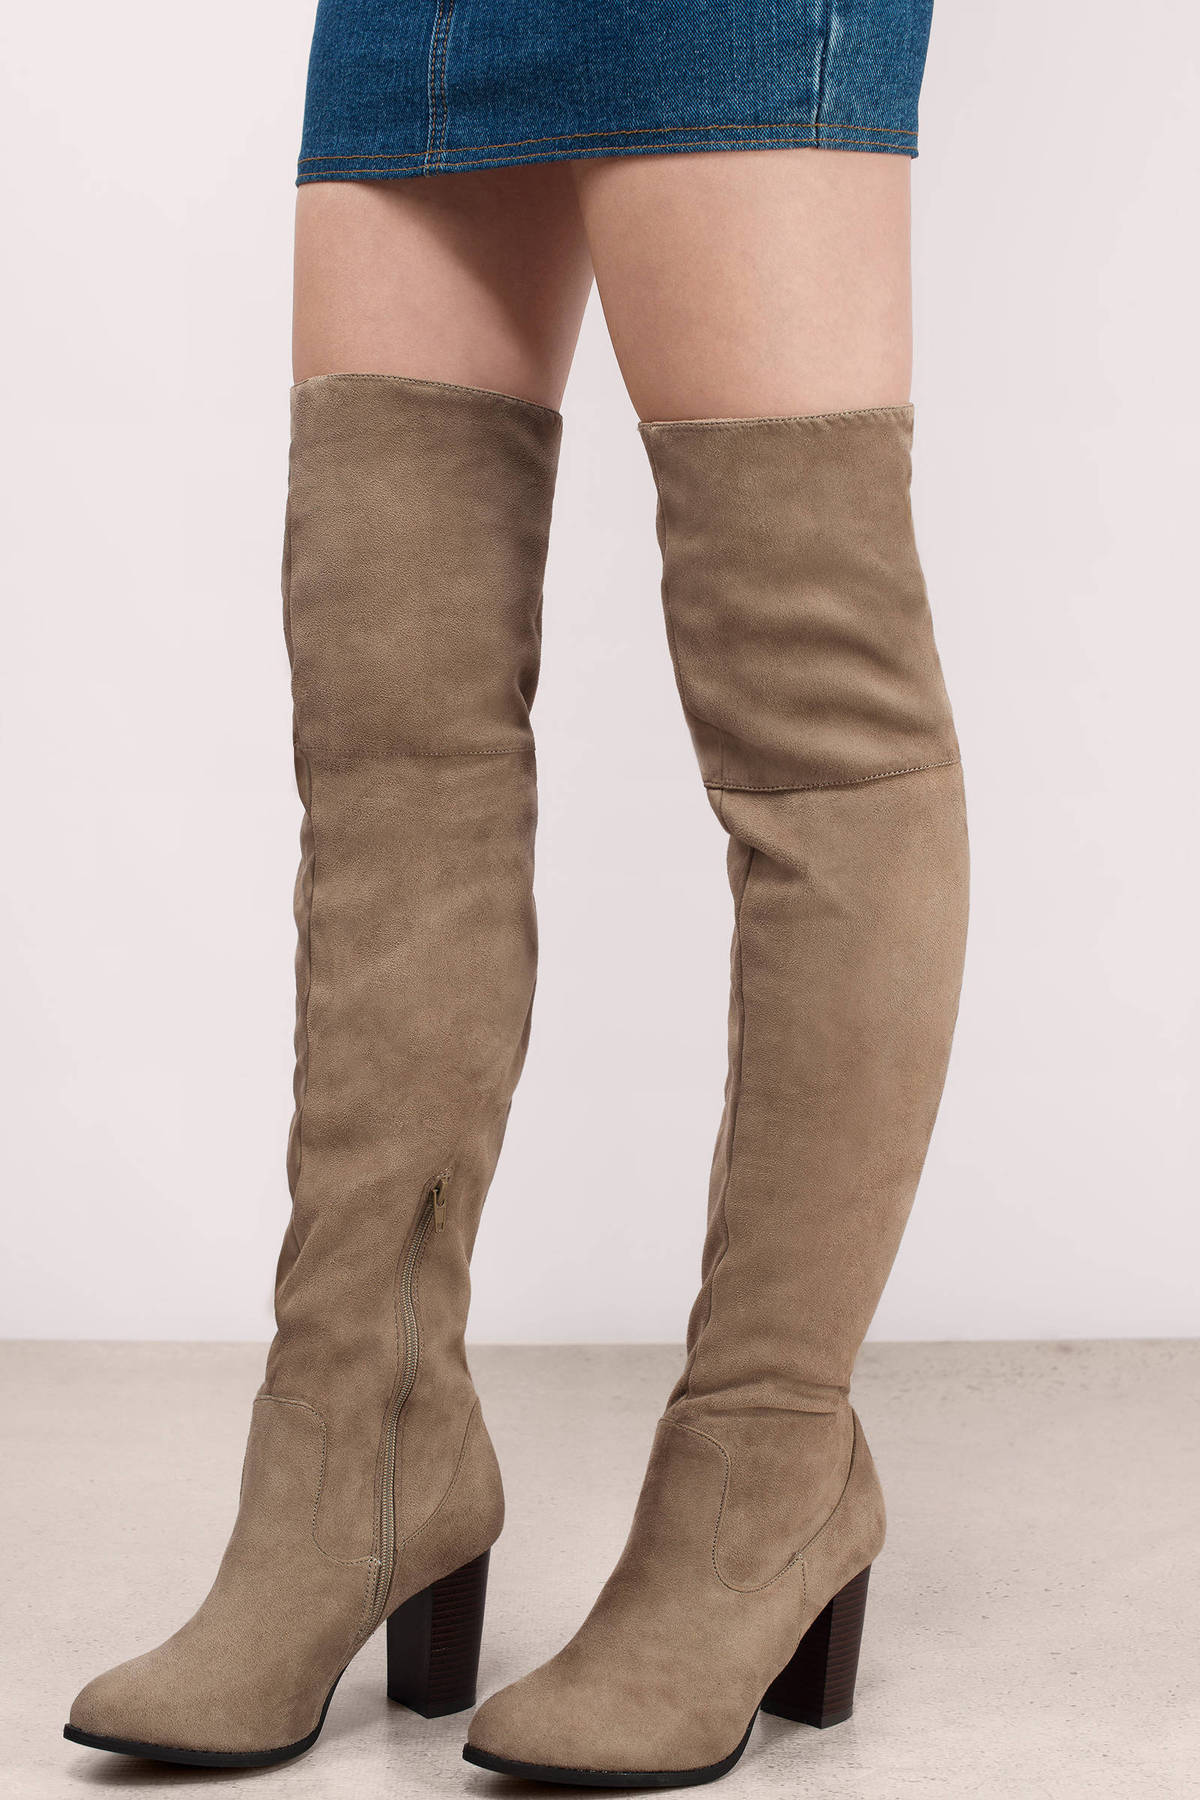 Trendy Taupe Boots - Beige Boots - Suede Boots - $45.00